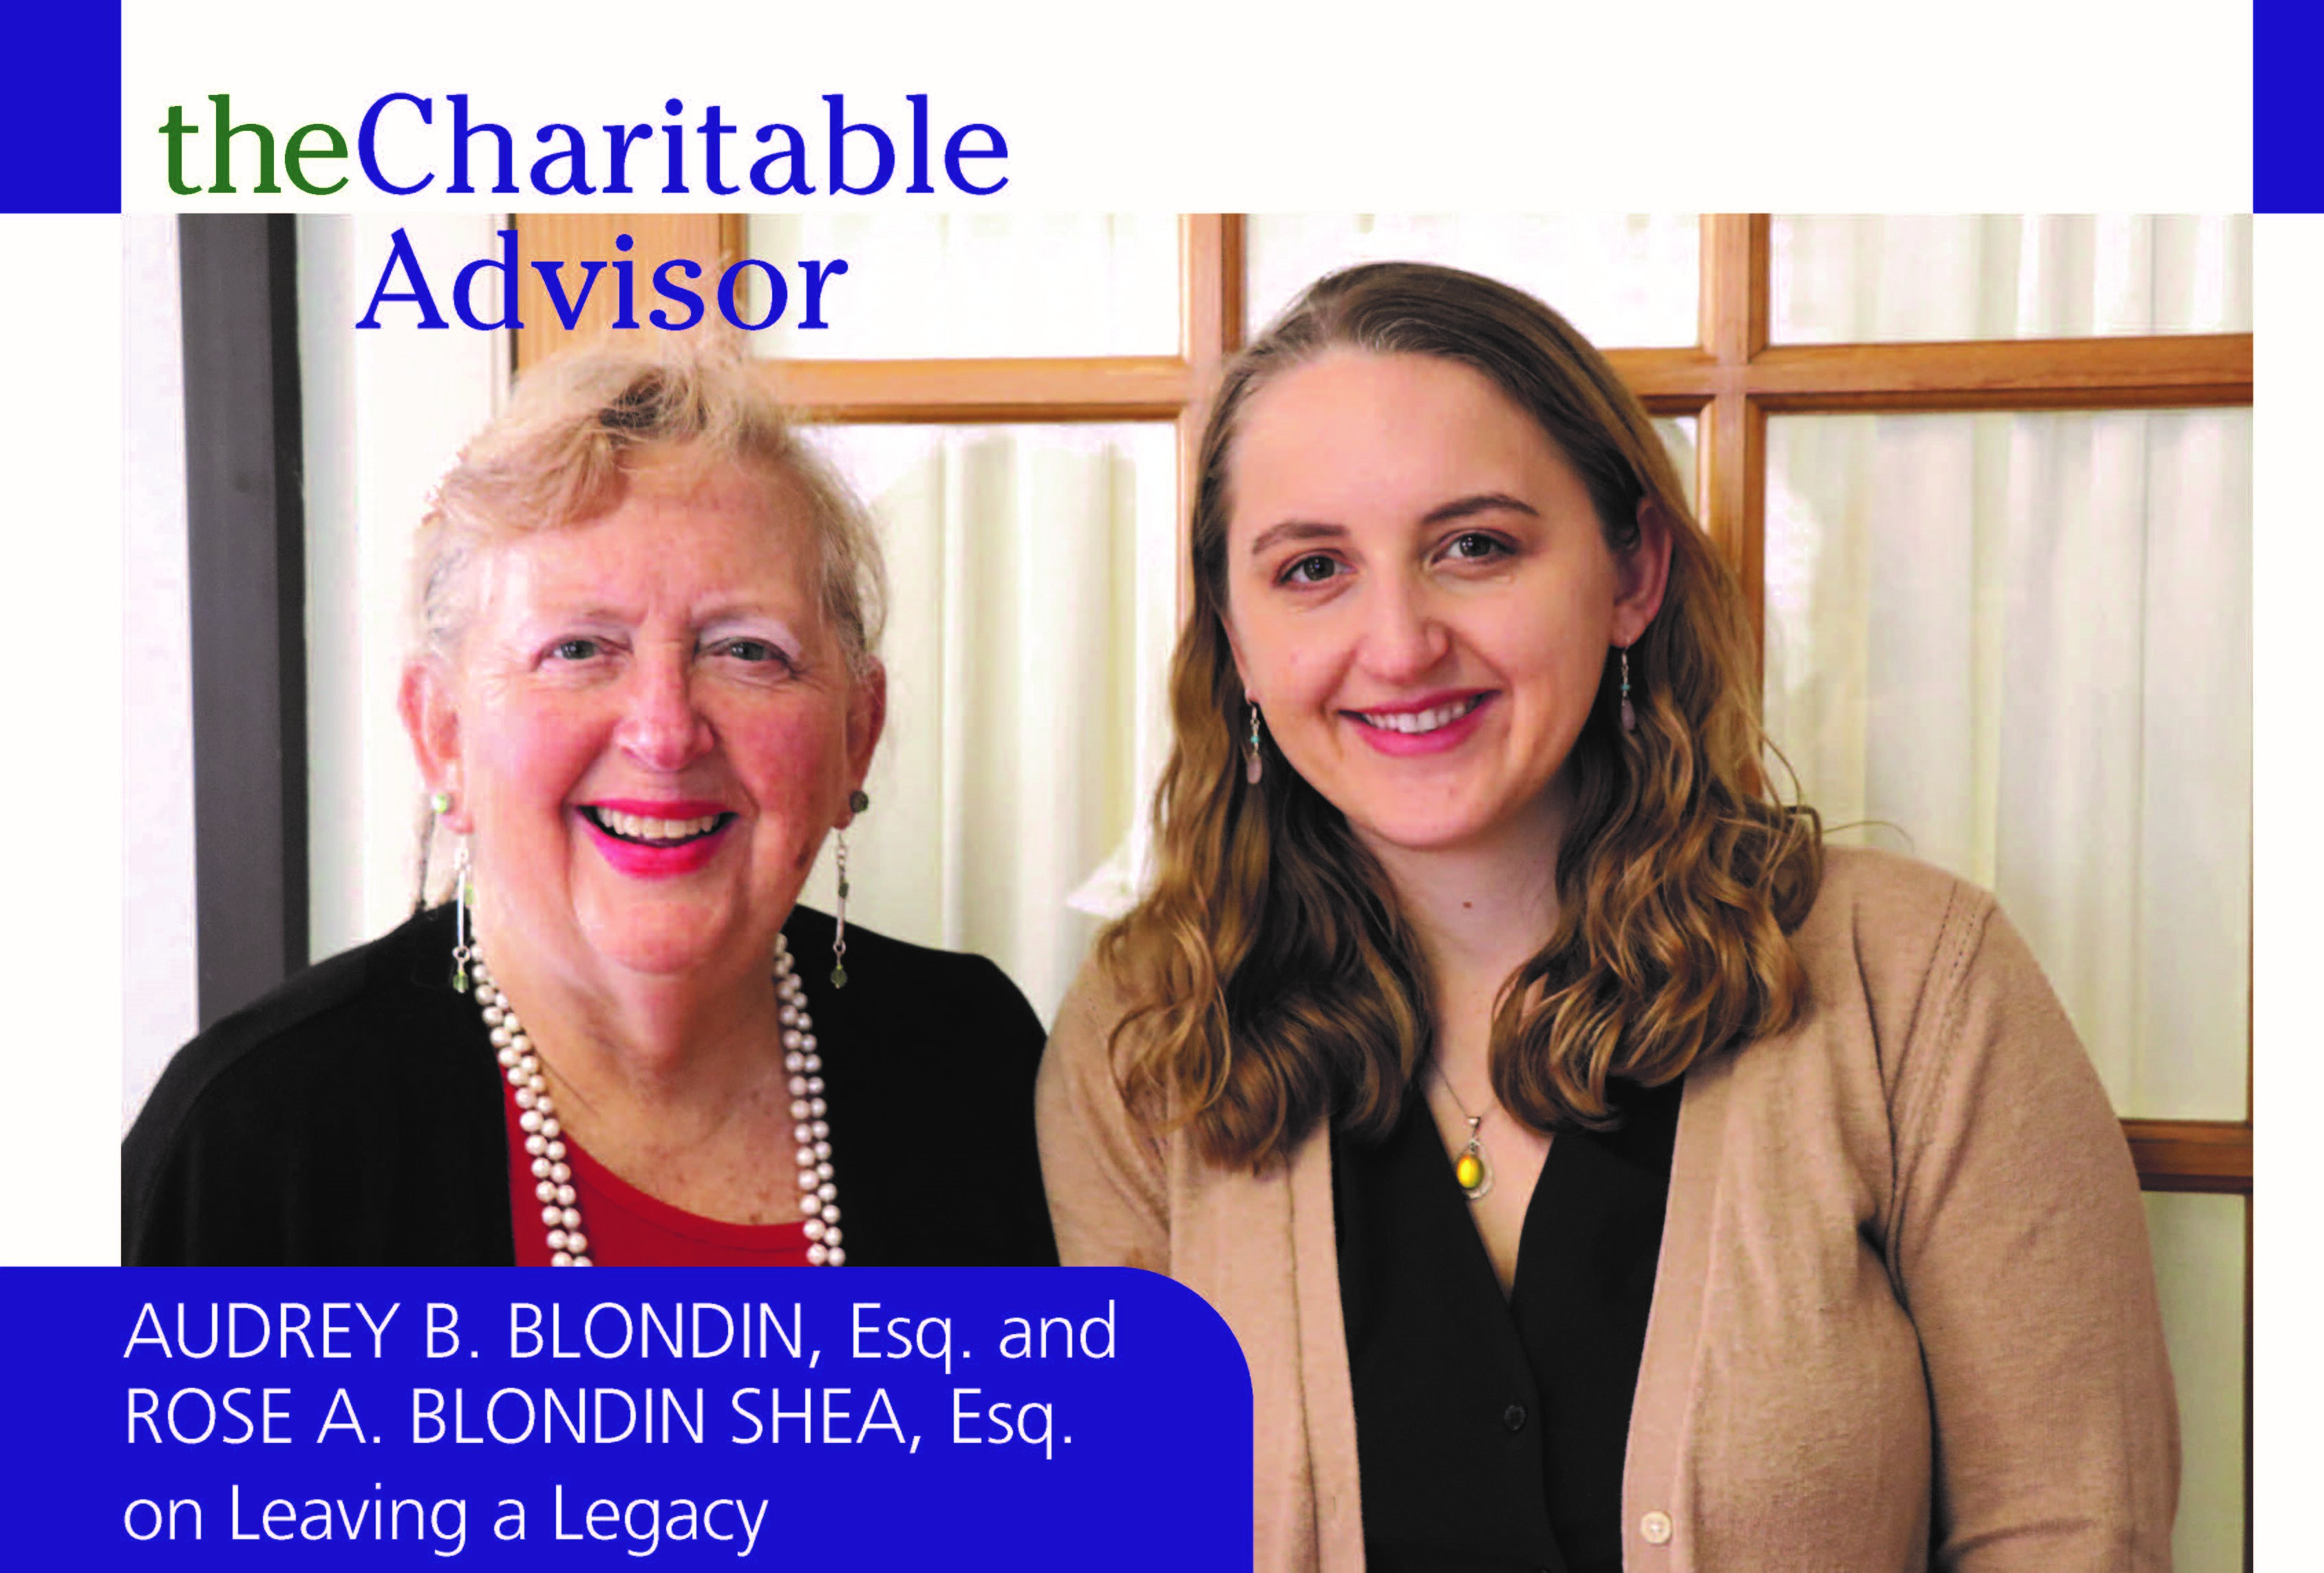 Audrey Blondin and Rose Blondin Shea stand in their office